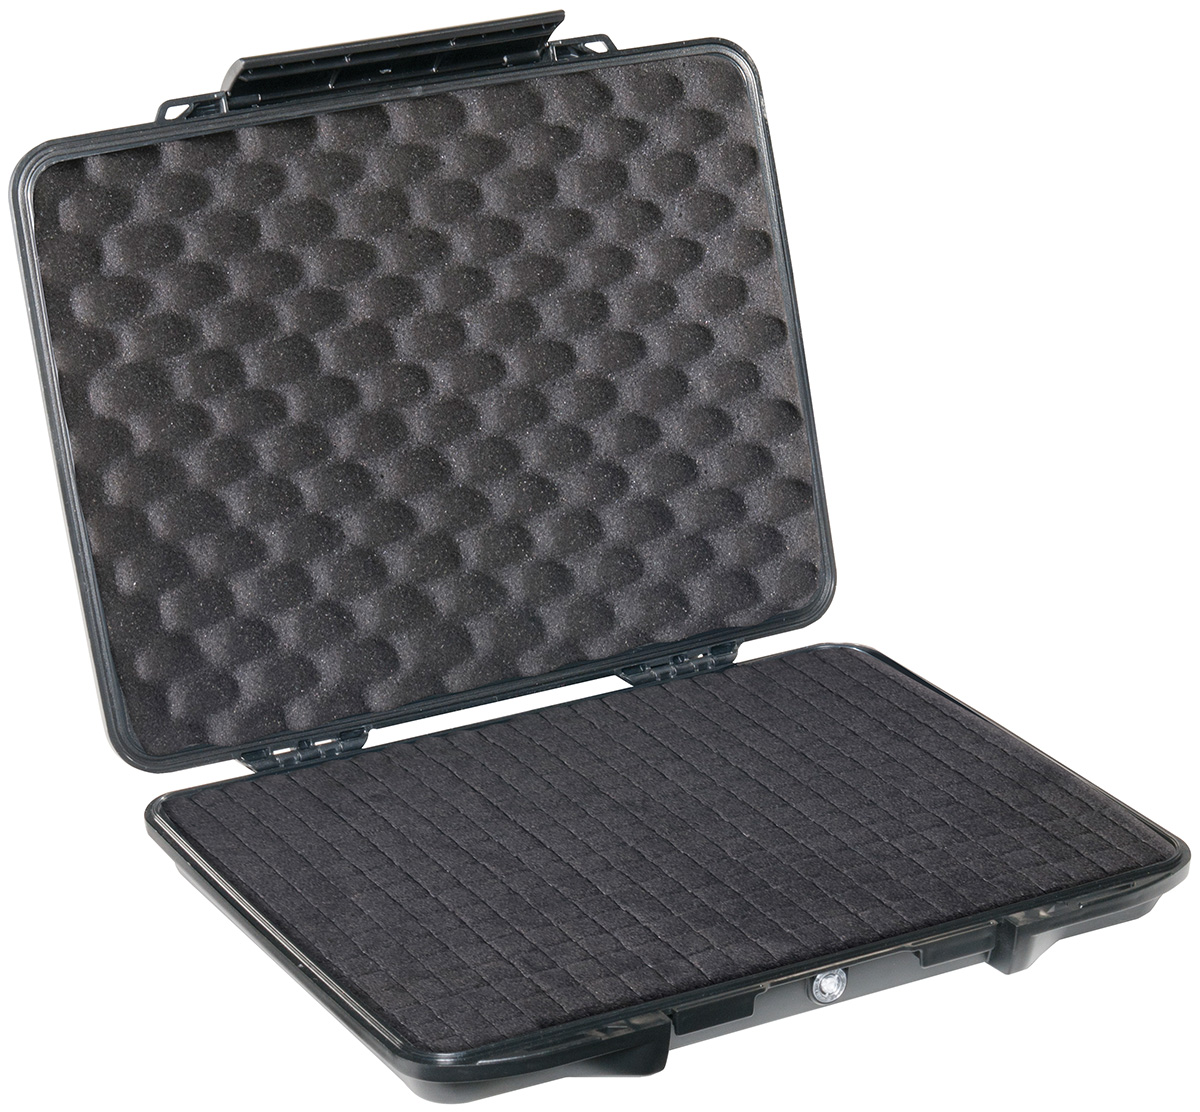 pelican 1085 tough waterproof laptop lifetime case